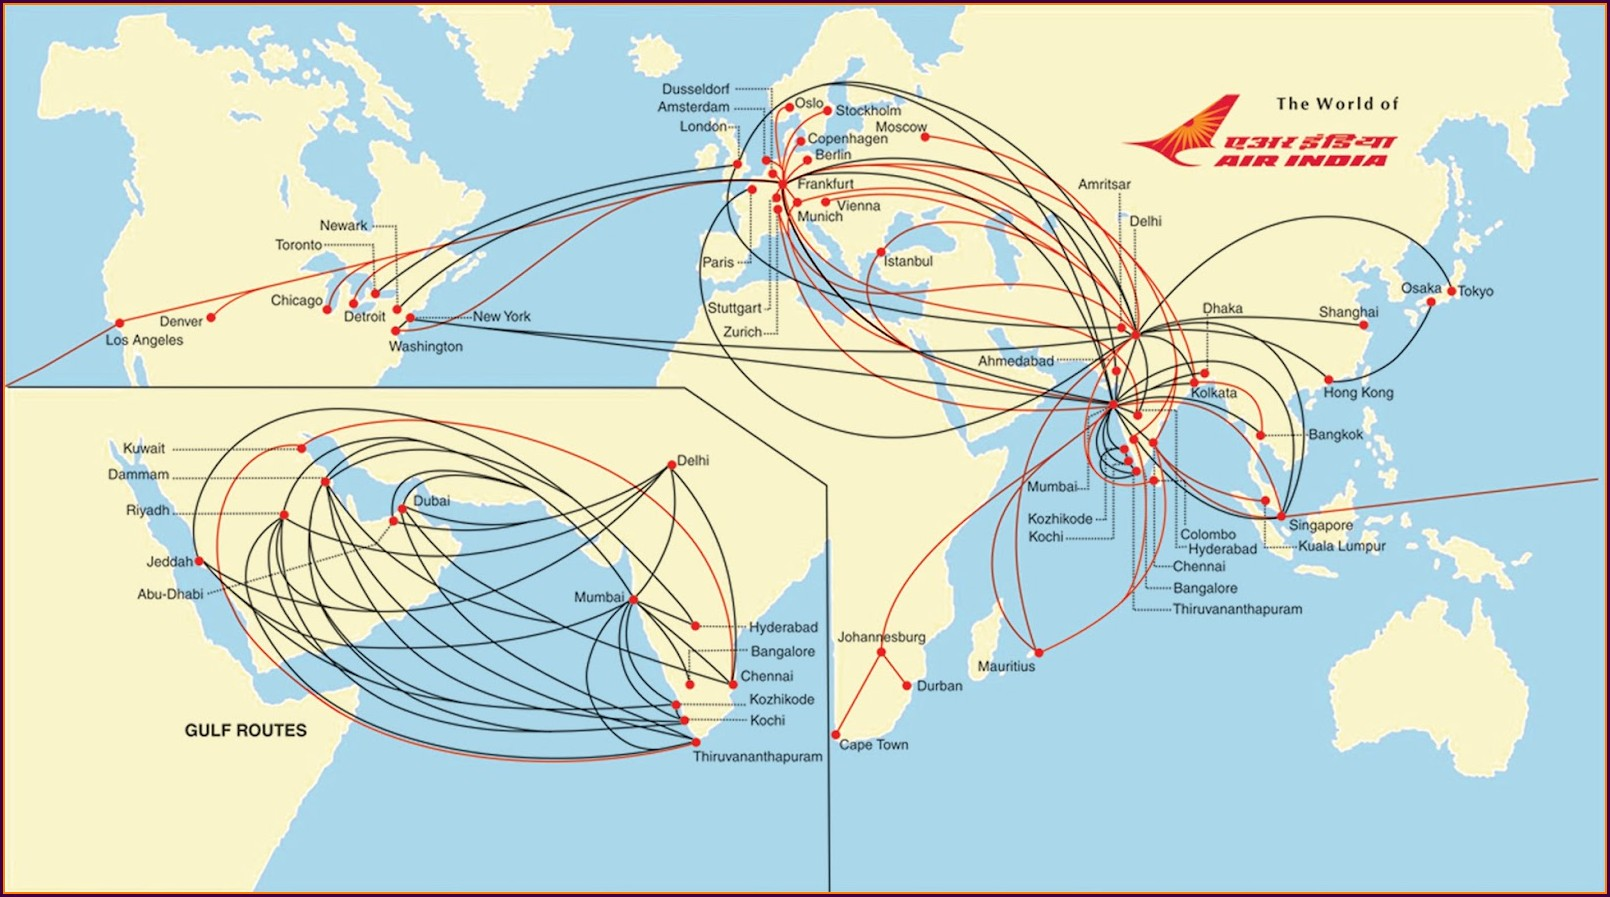 Delhi To Chicago Air India Flight Route Map